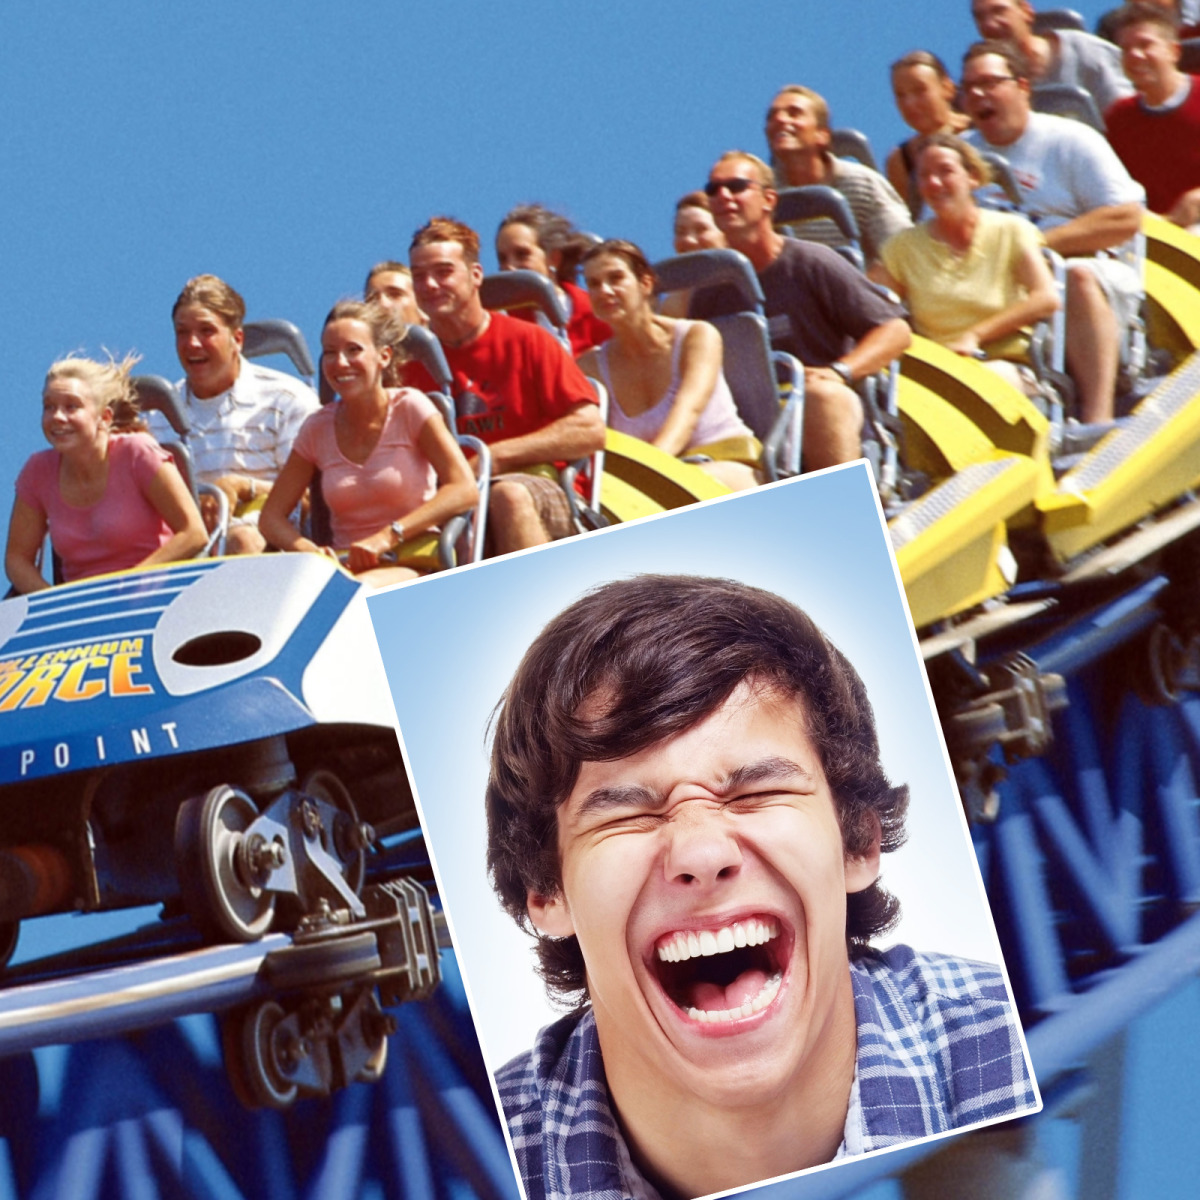 Having fun on a roller coaster